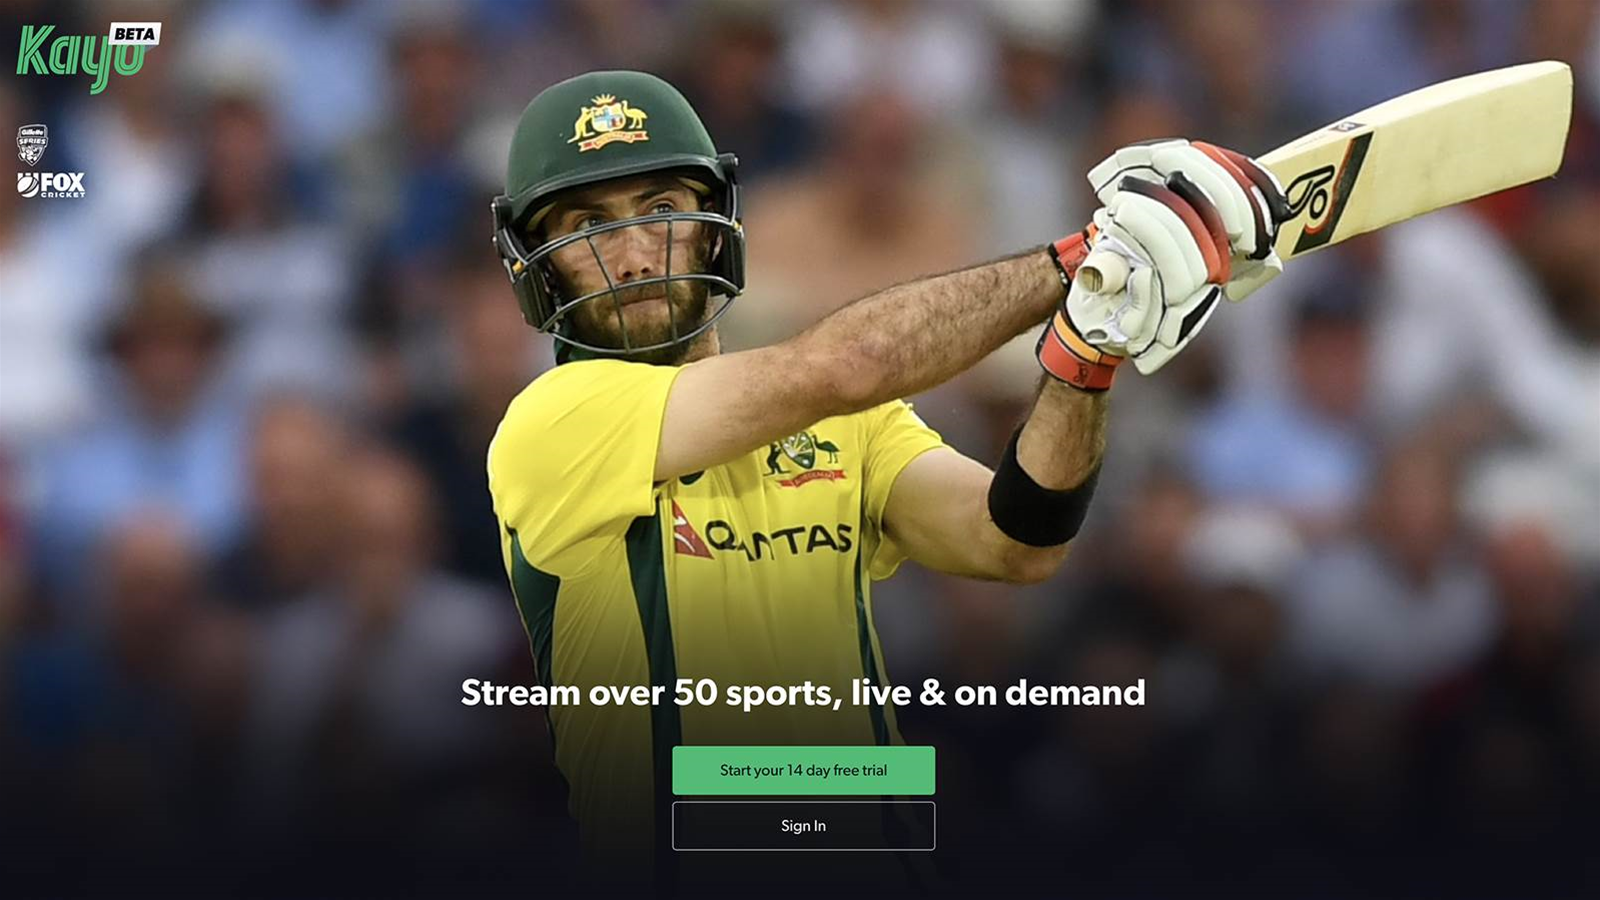 Fox Sports betatest standalone streaming service